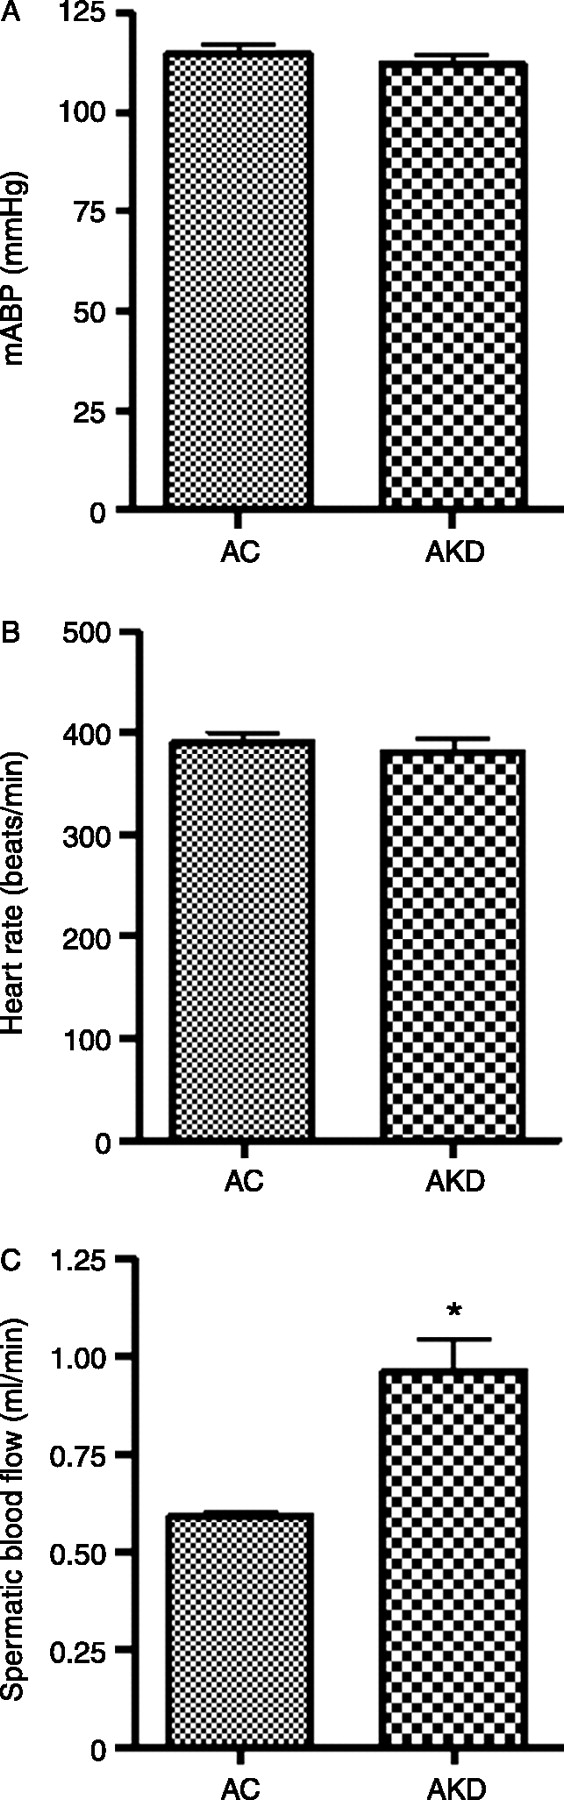 Effects Of Kaempferia Parviflora Extracts On Reproductive Parameters Wiring Diagram Komatsu Ck 30 Figure 1